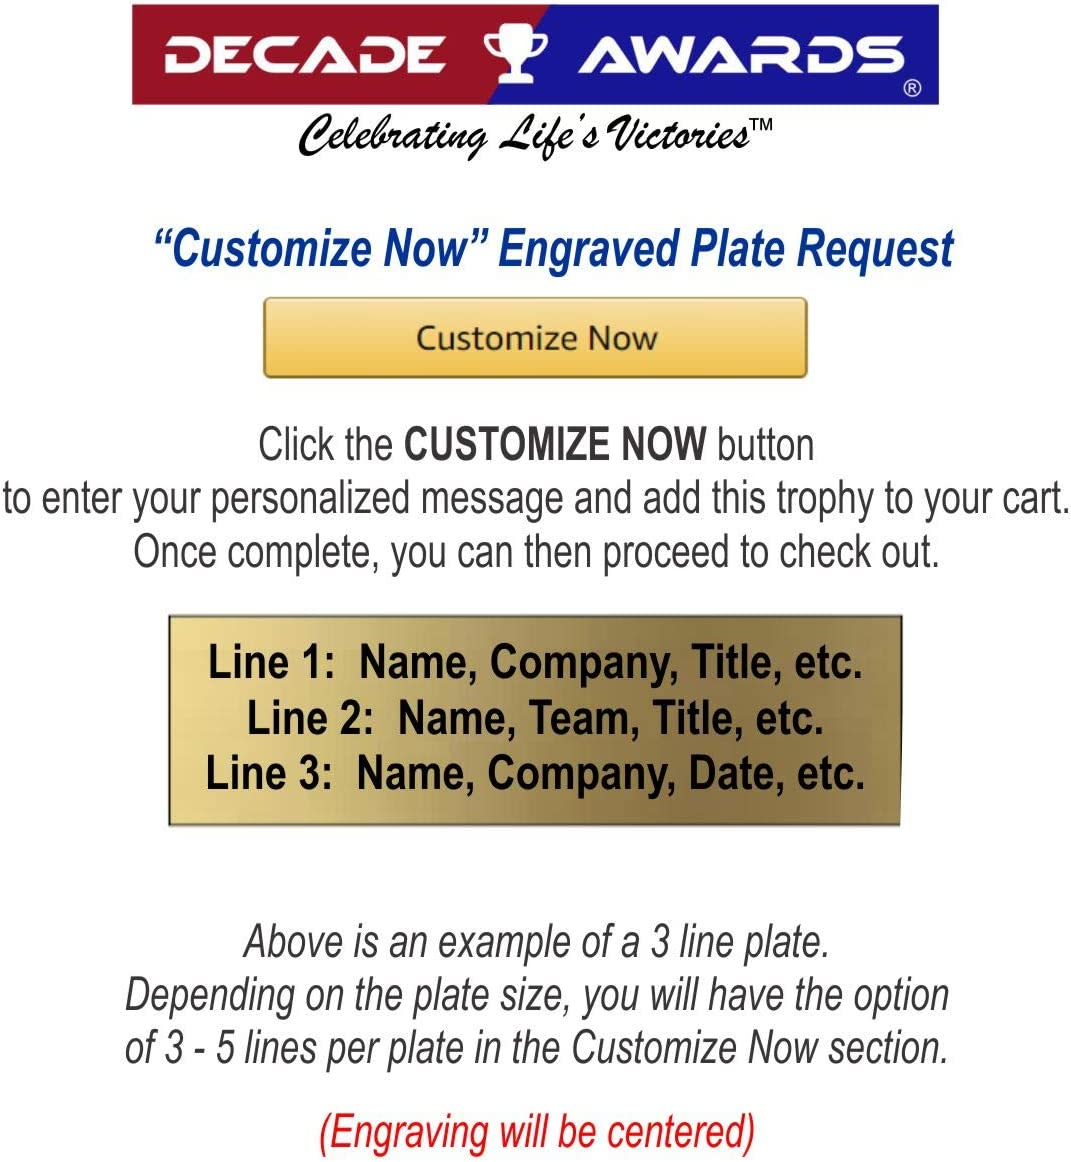 American Hero Award Customize Now Decade Awards American Flag Color Resin Trophy 4 Inch Tall